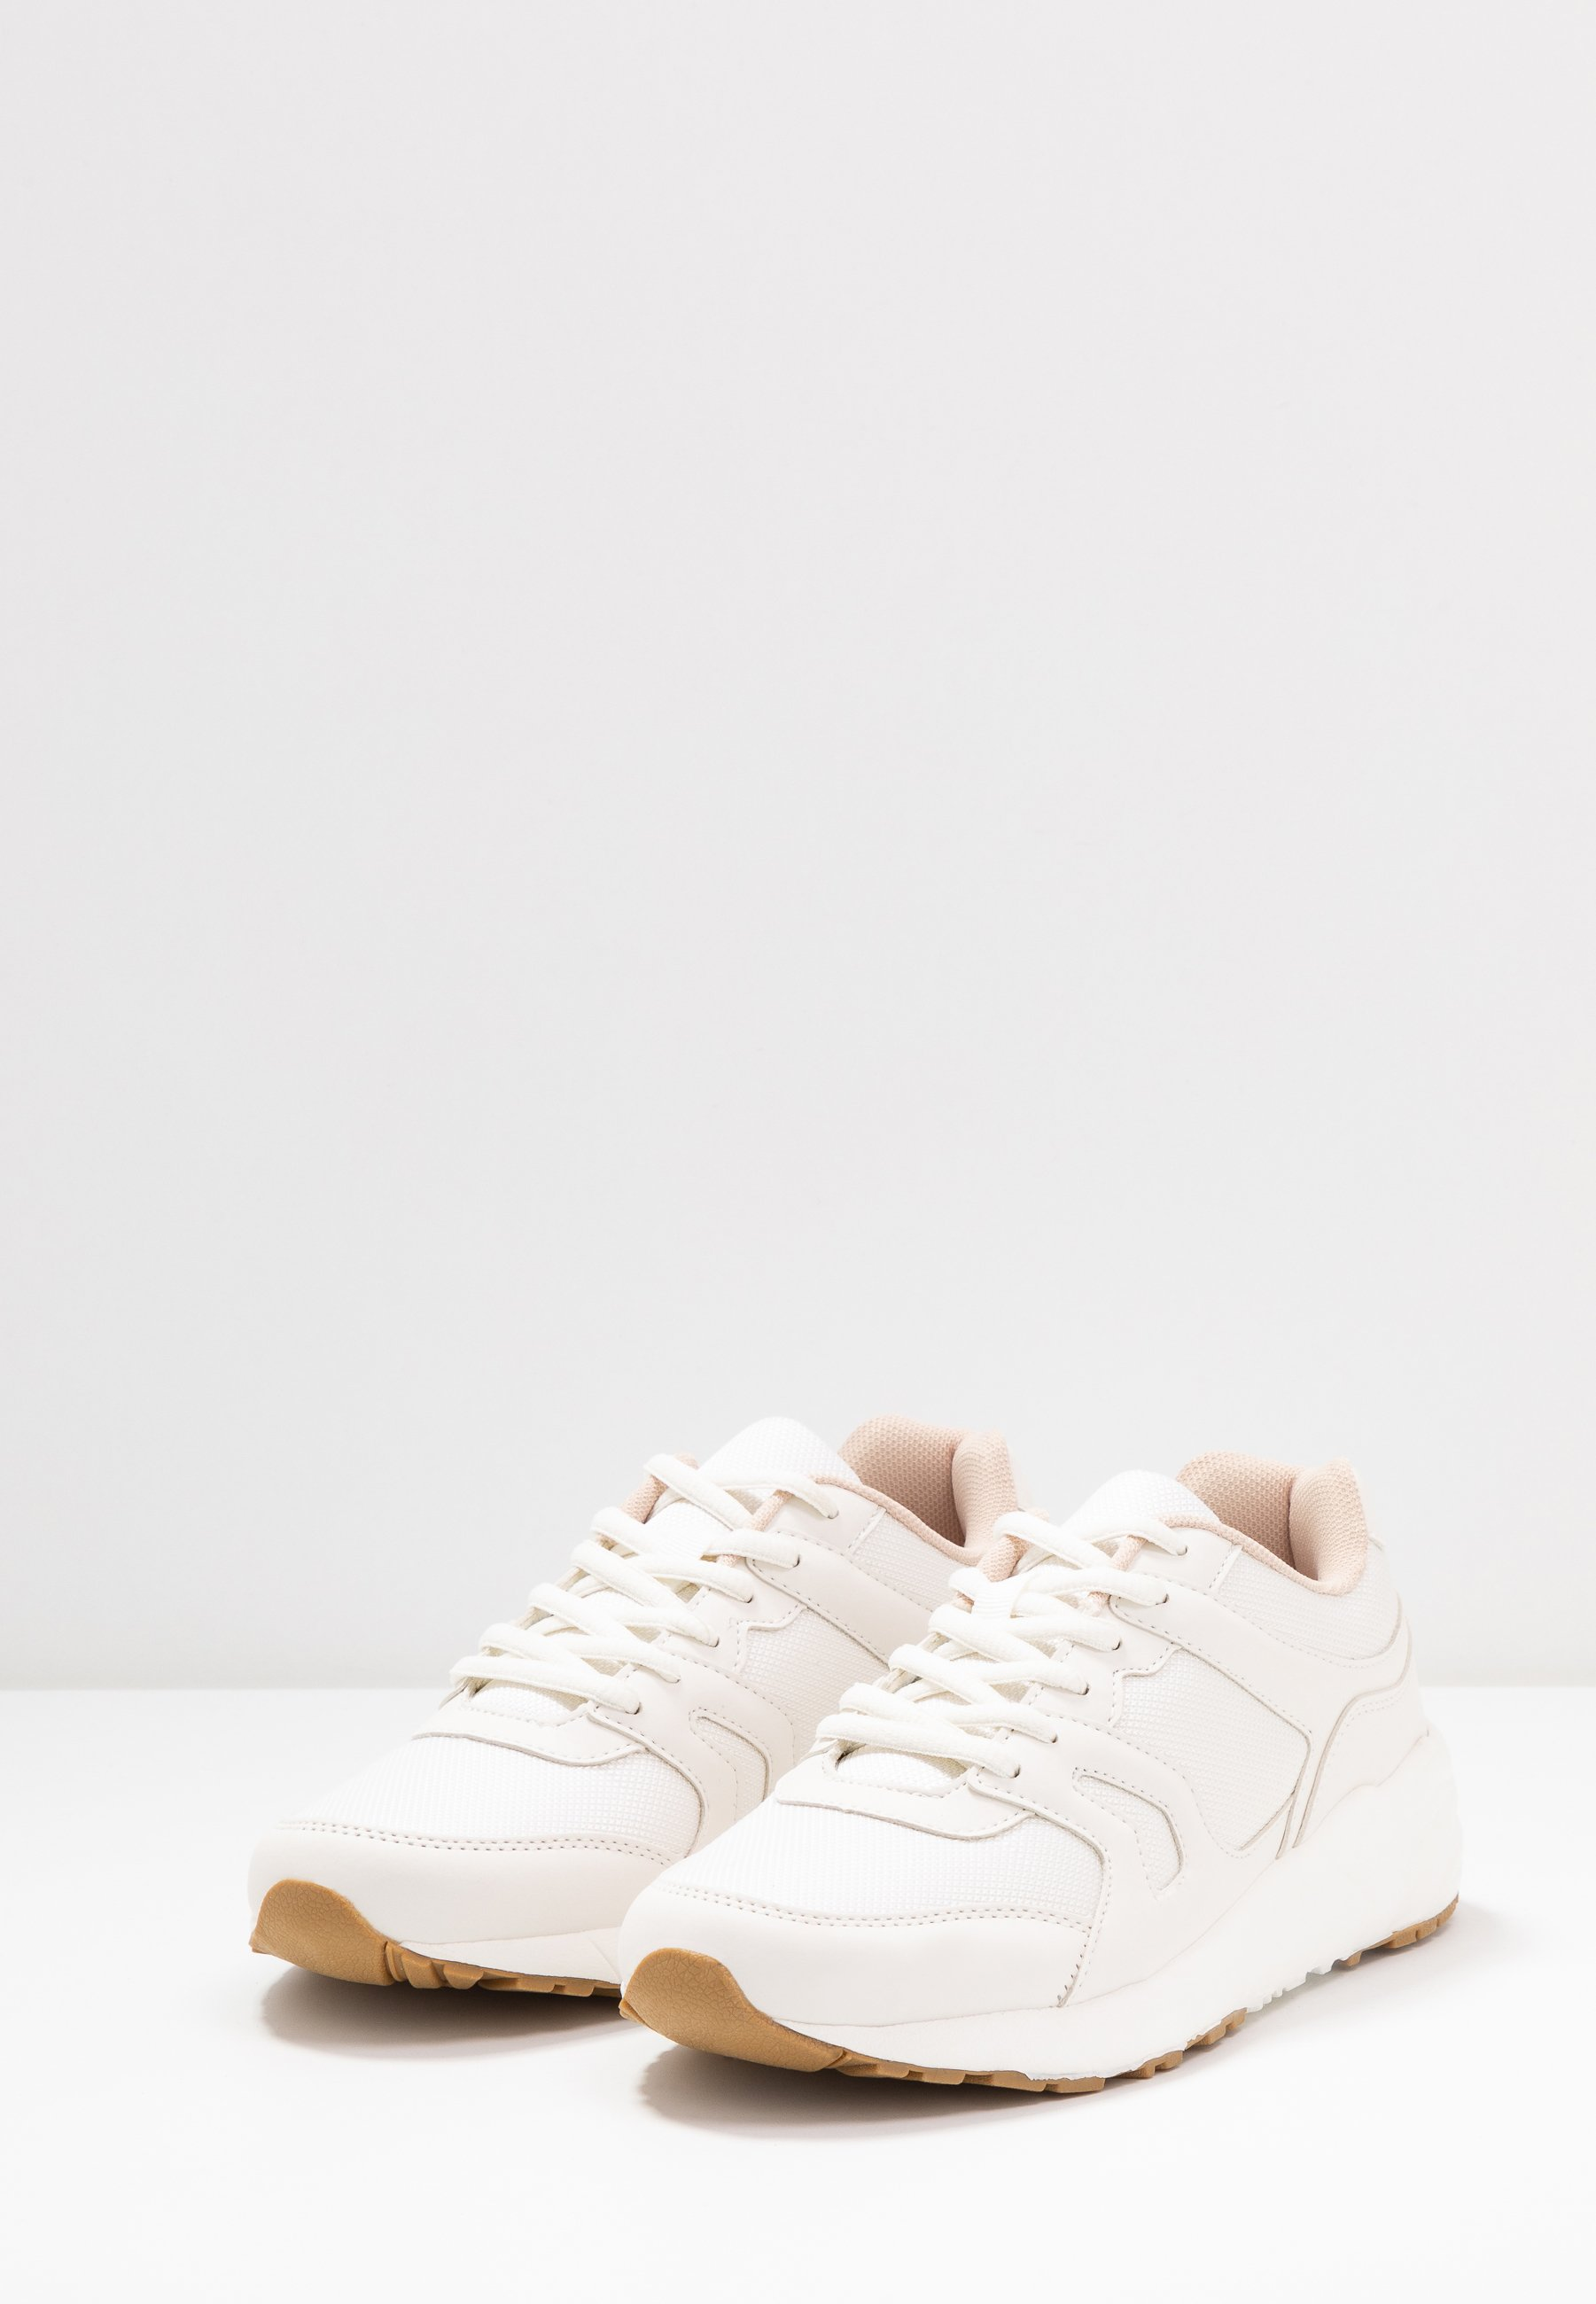 Pier One Sneakers - white